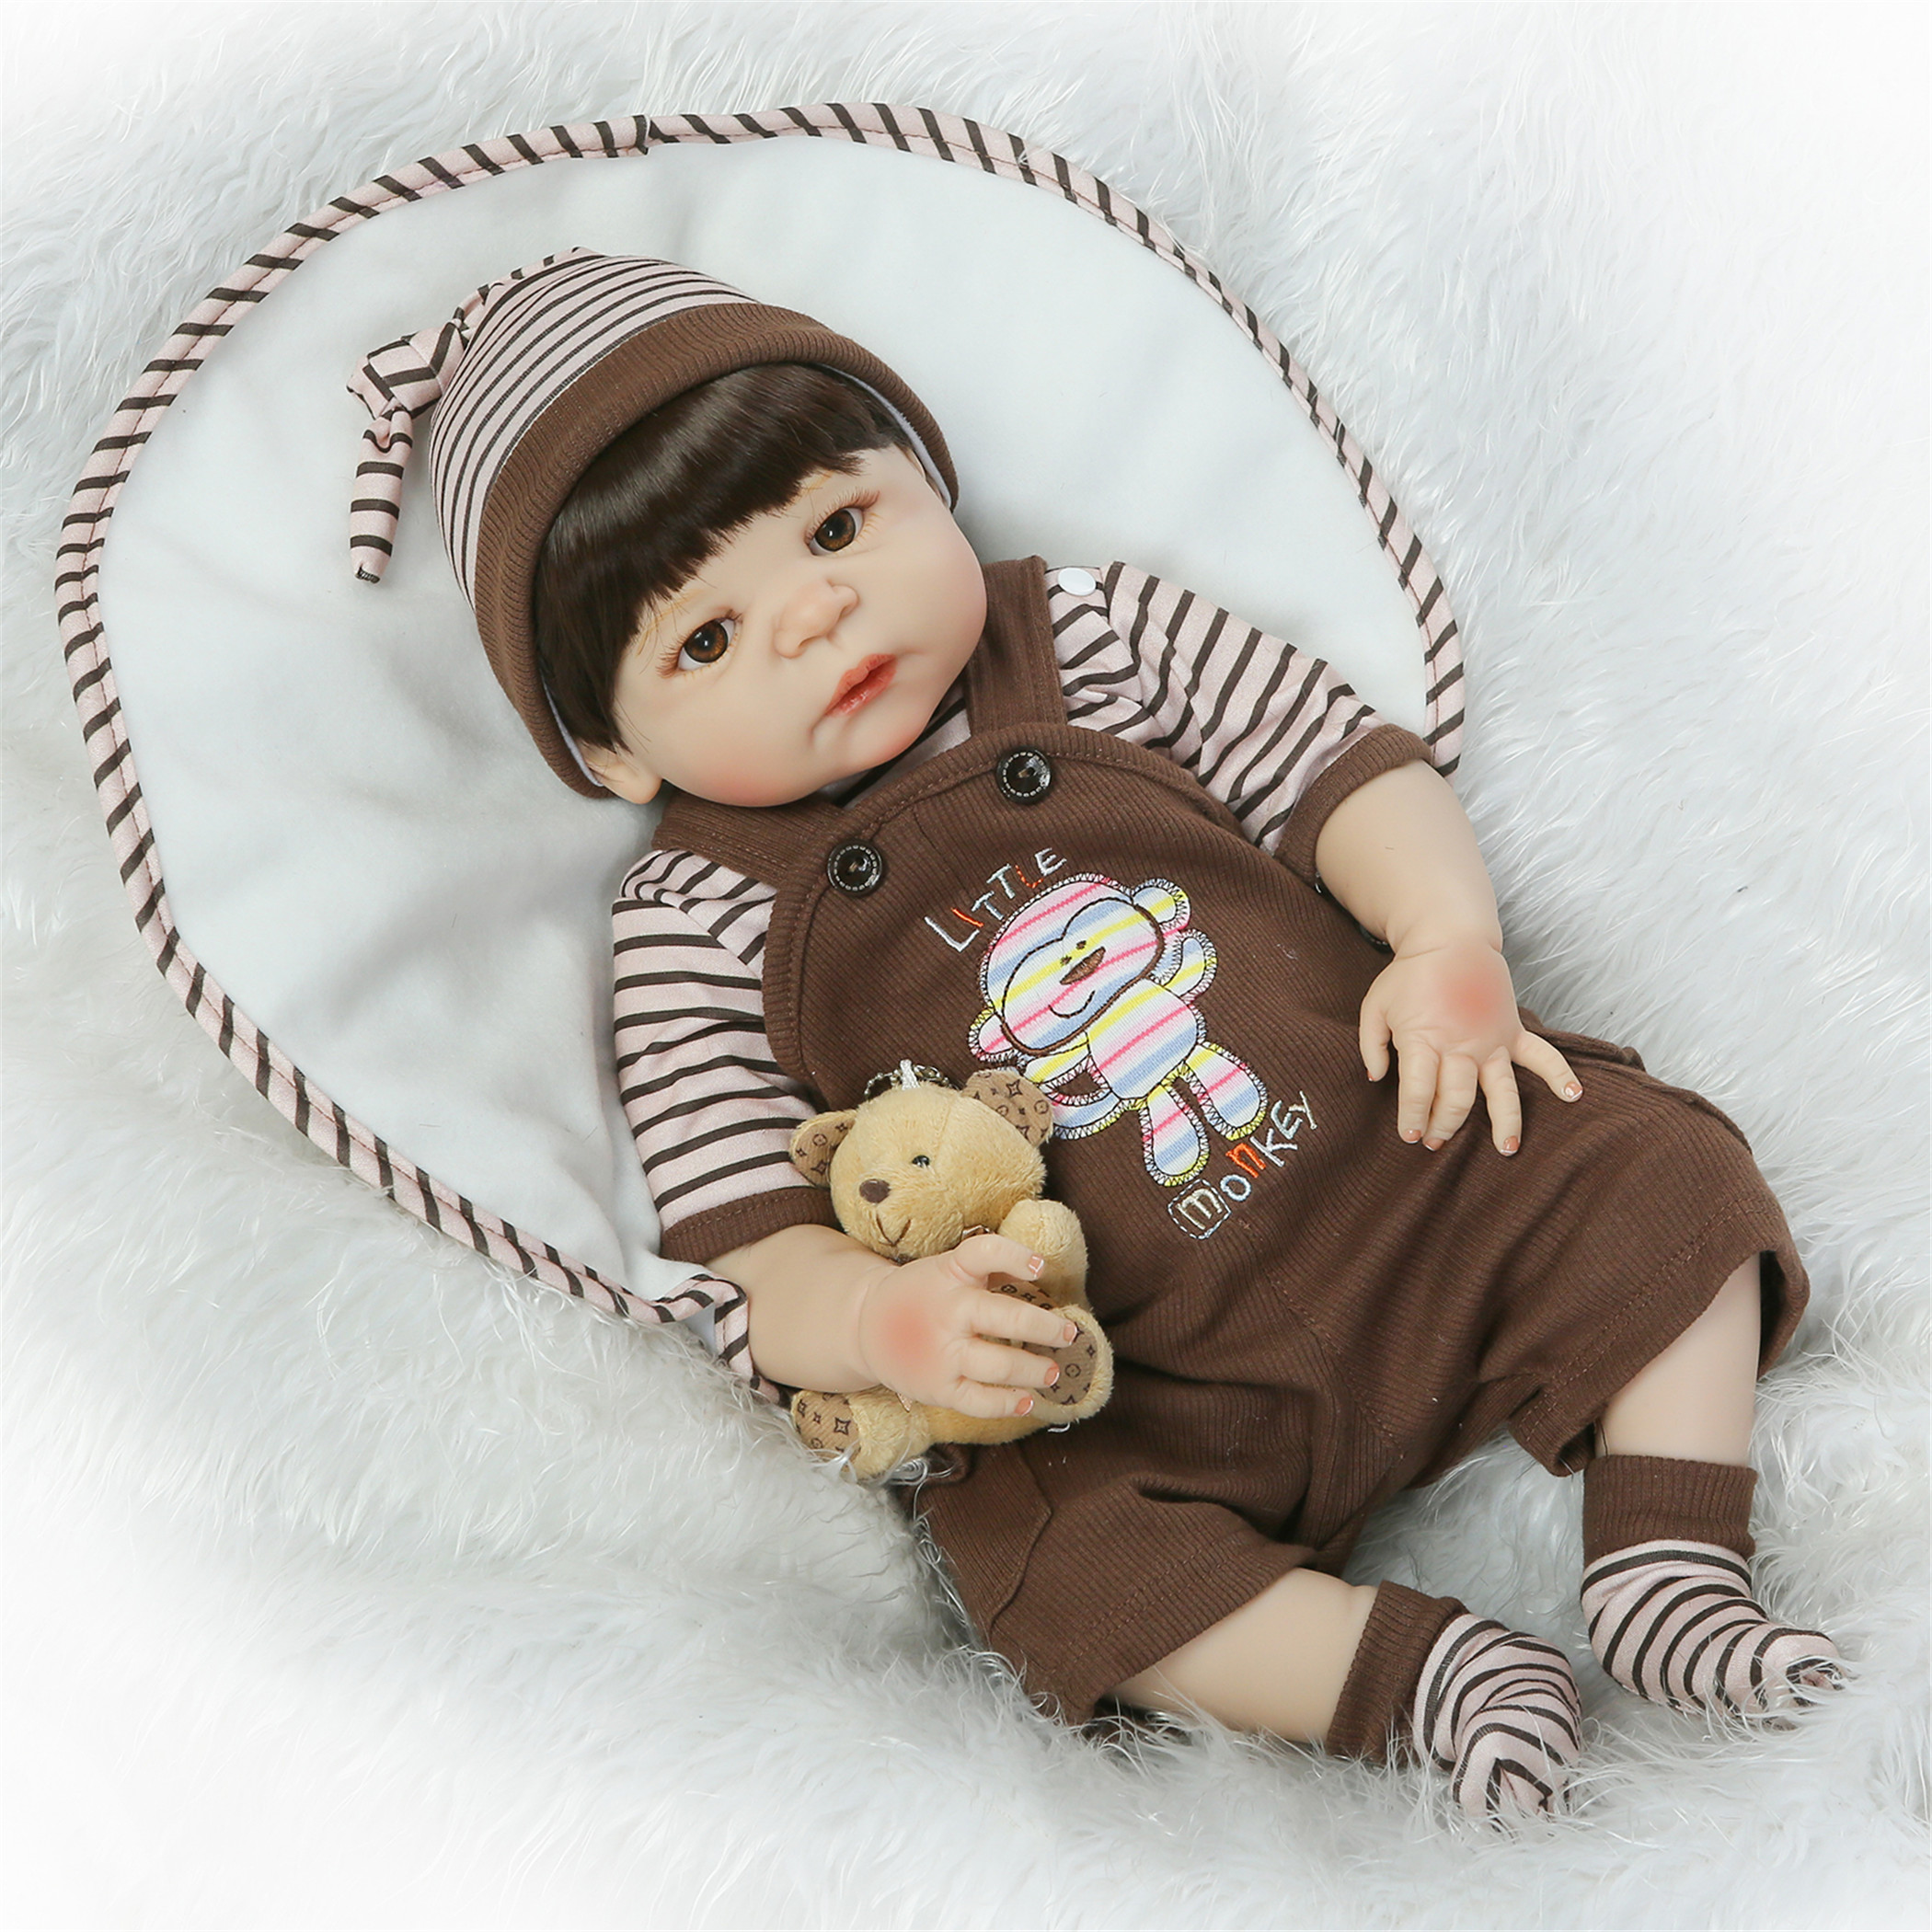 NPK Collection Reborn Baby Doll Soft Silicone Vinyl 22inch 55cm Lovely Lifelike Cute Birthday Gift Christmas